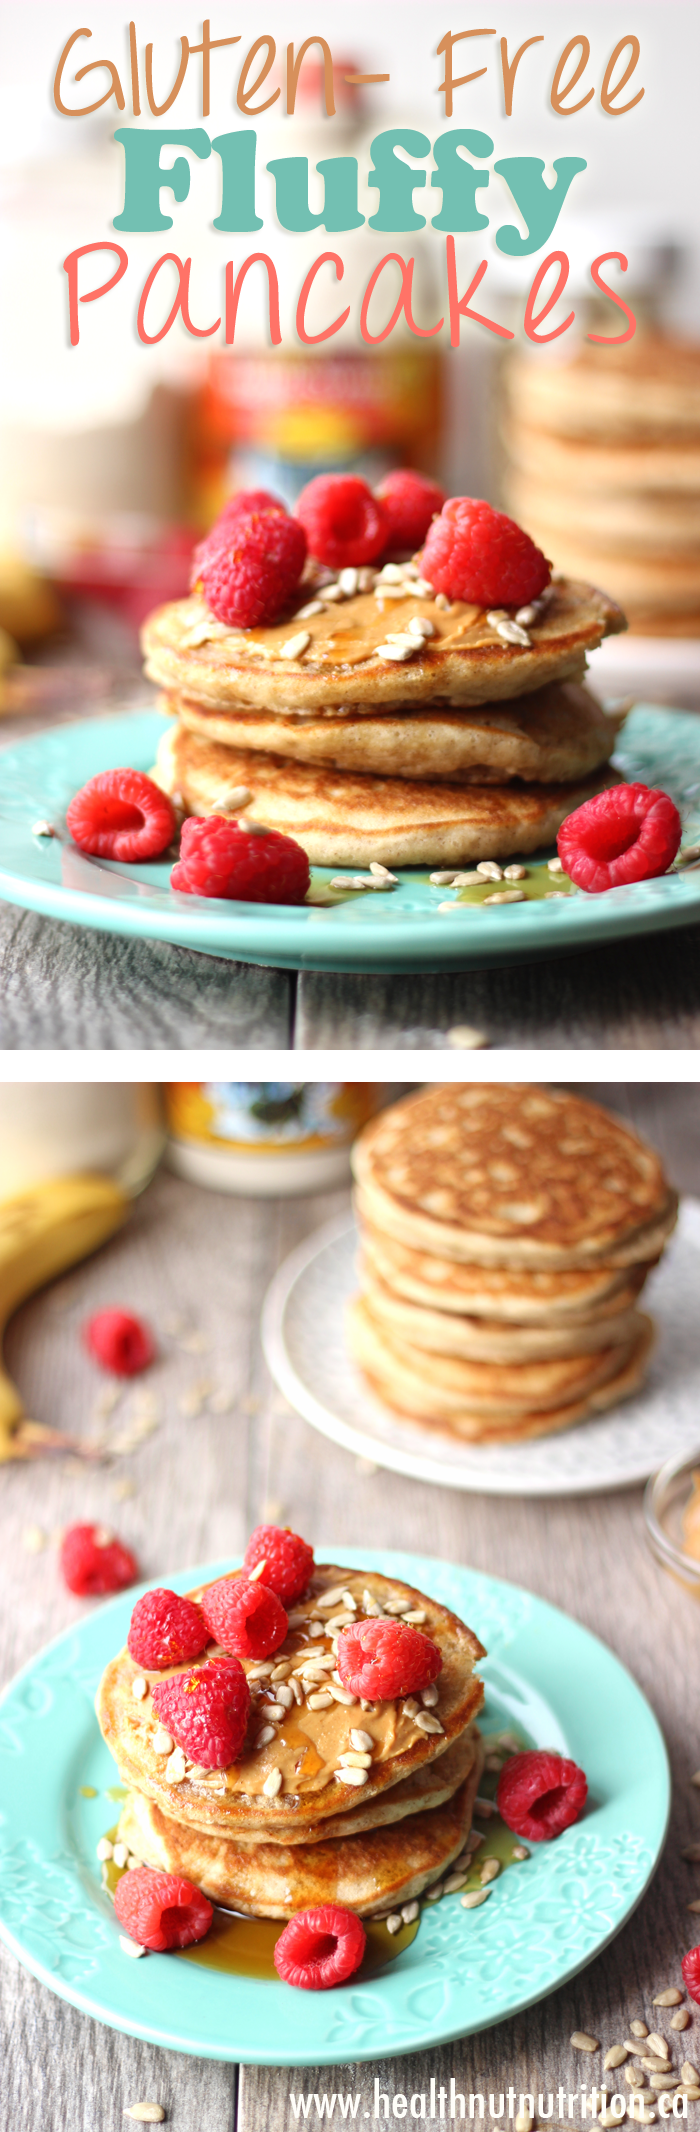 Sundays mornings just got better with these healthy, fluffy and gluten-free pancakes drizzled with Canadian maple syrup.